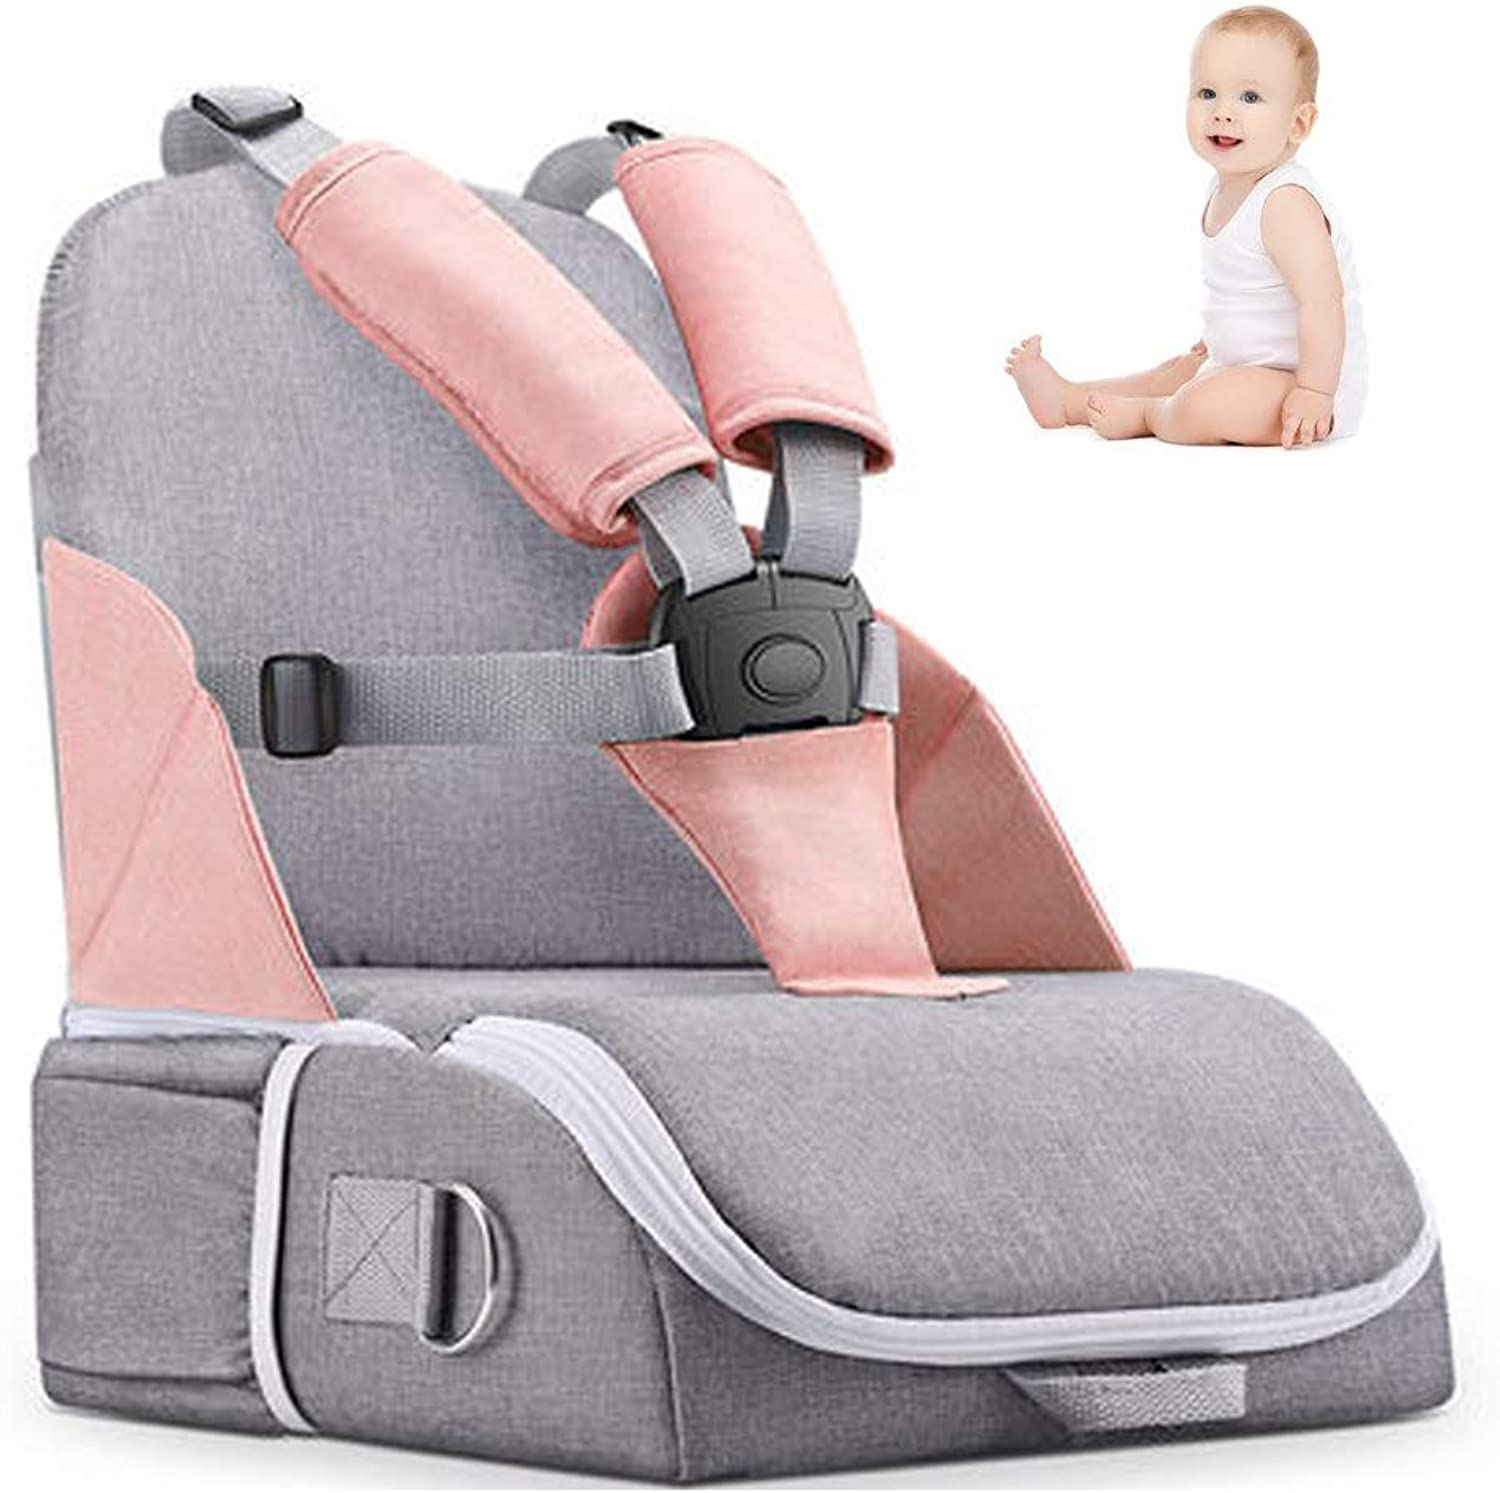 Travel Booster Seat,Feeding Booster Mommy Bag Foldable Large Capacity As High Chair for Babies Toddlers for Journeys,LightPink